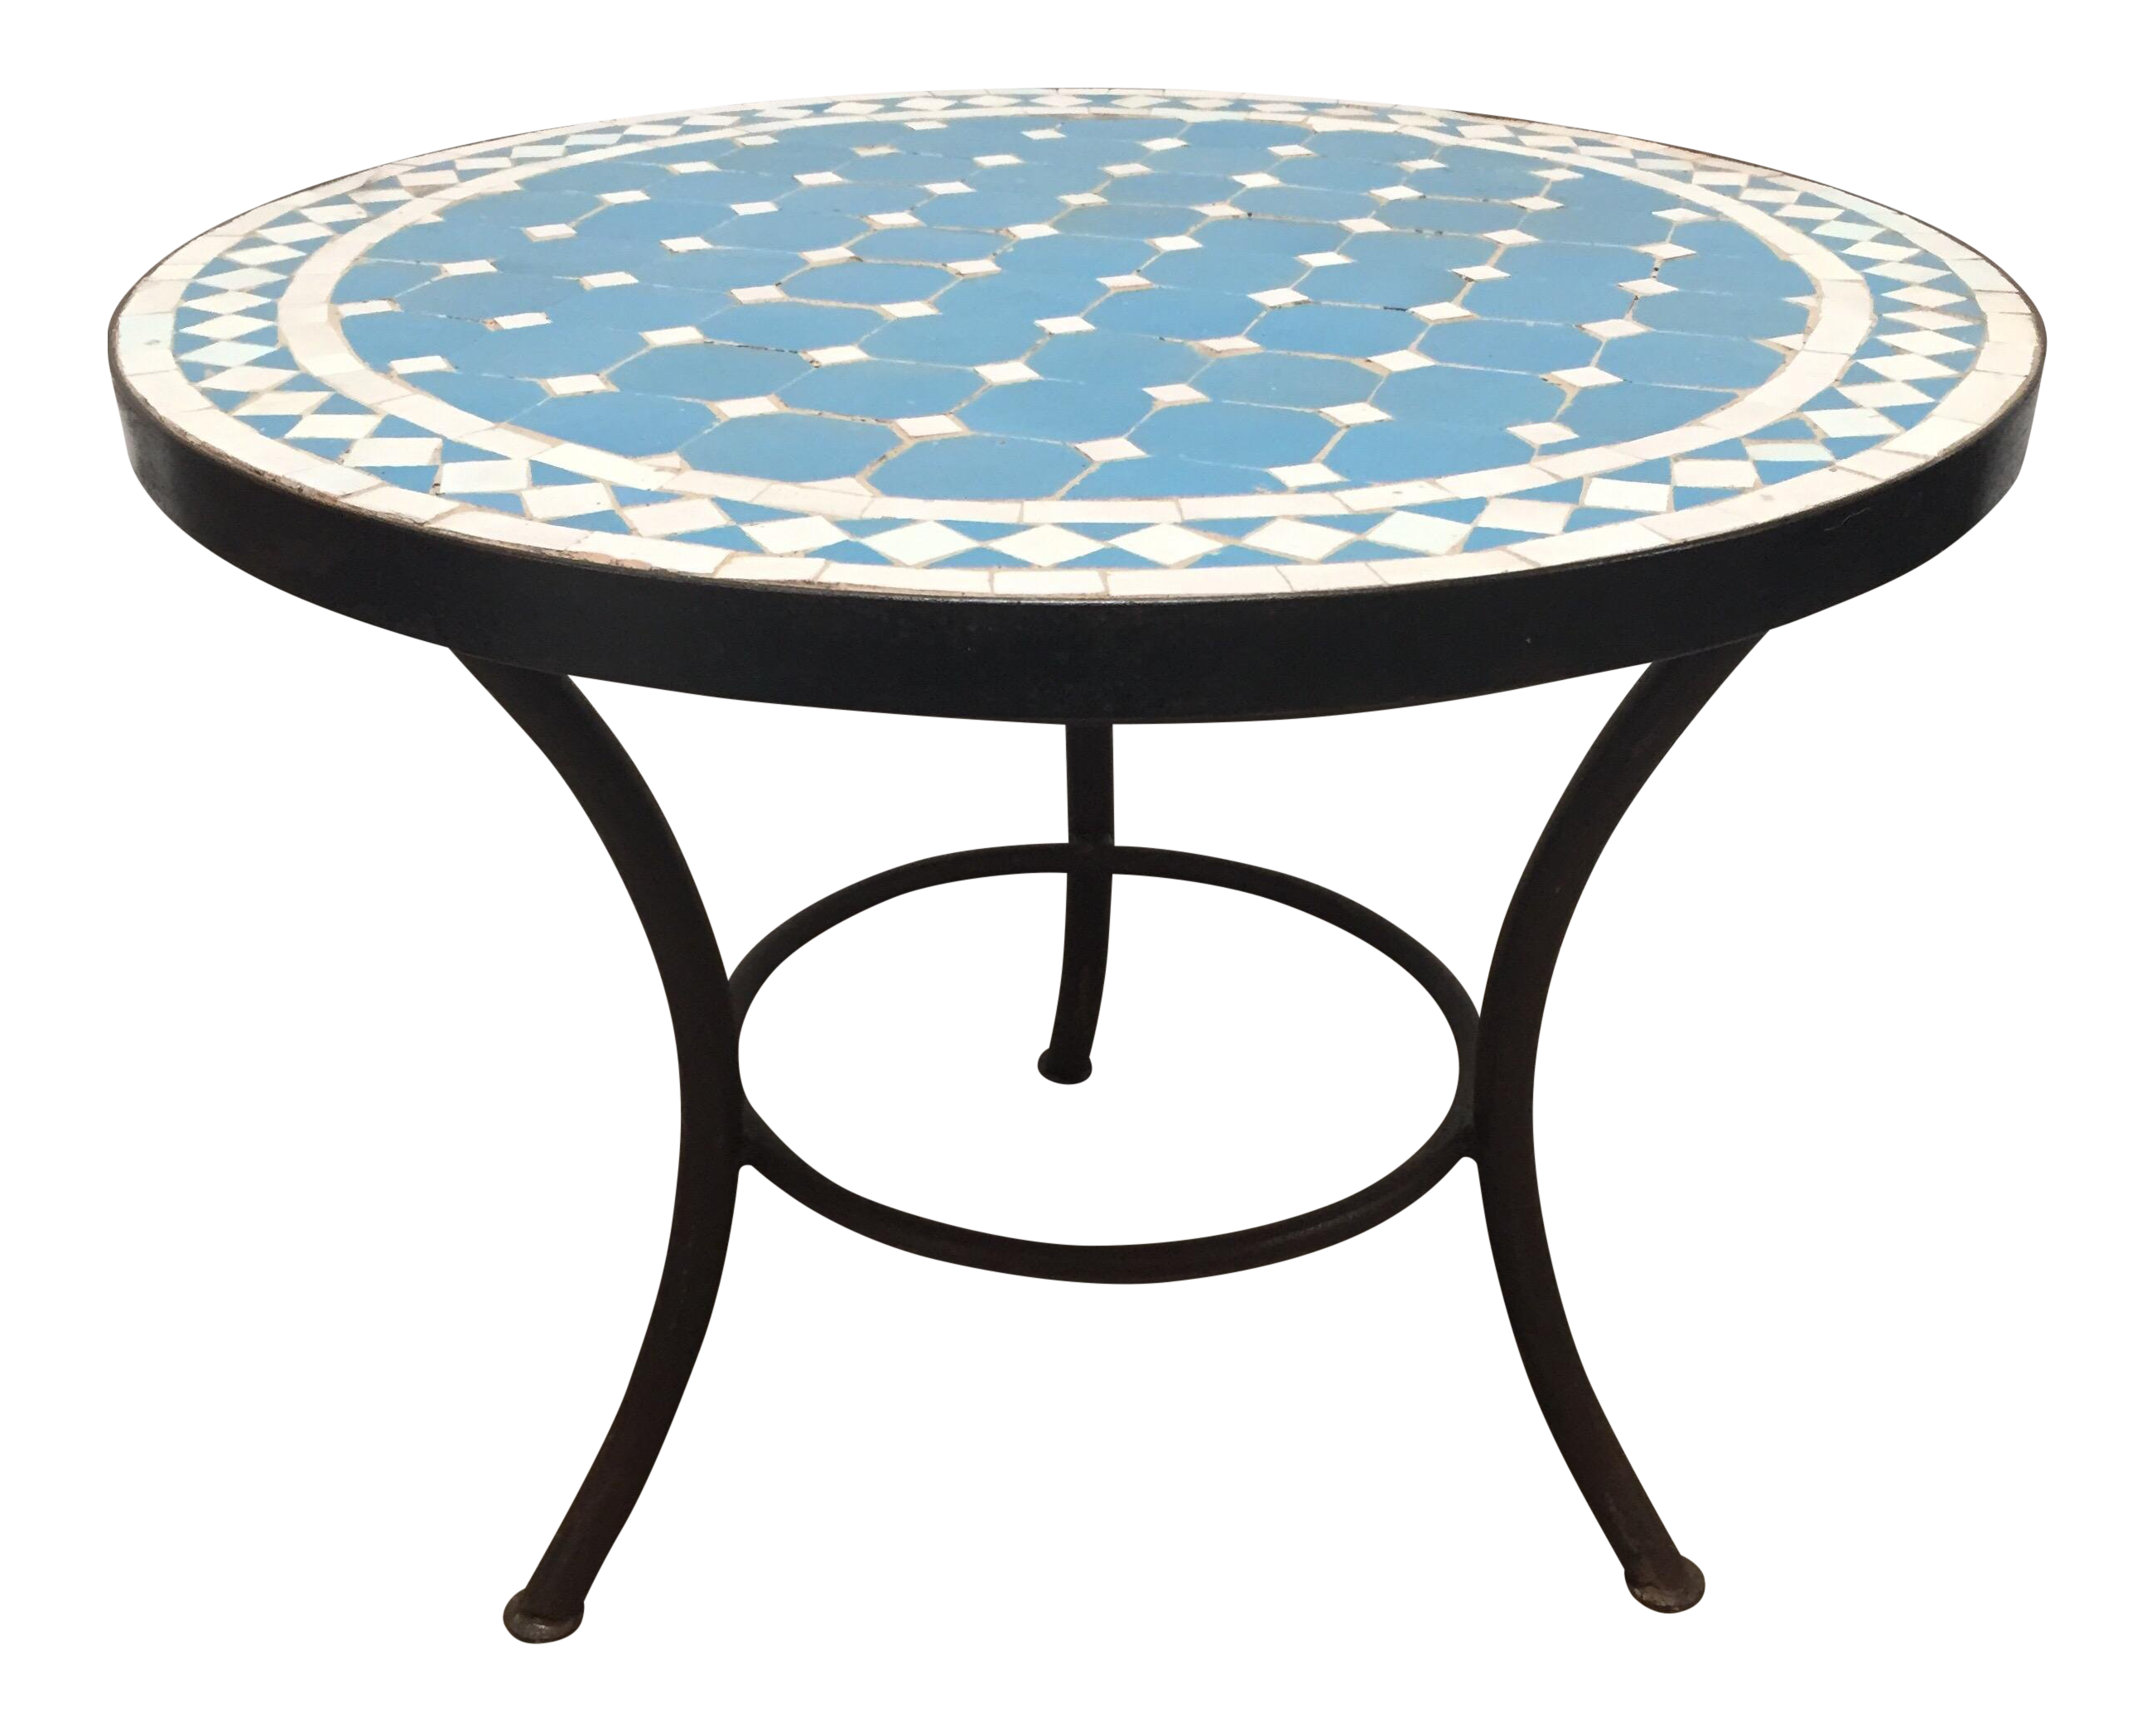 superb moroccan mosaic outdoor blue tile side table low iron base decaso yellow lamp rattan drinks simple plans metal outside modern sofa kirklands bar stools plexiglass coffee